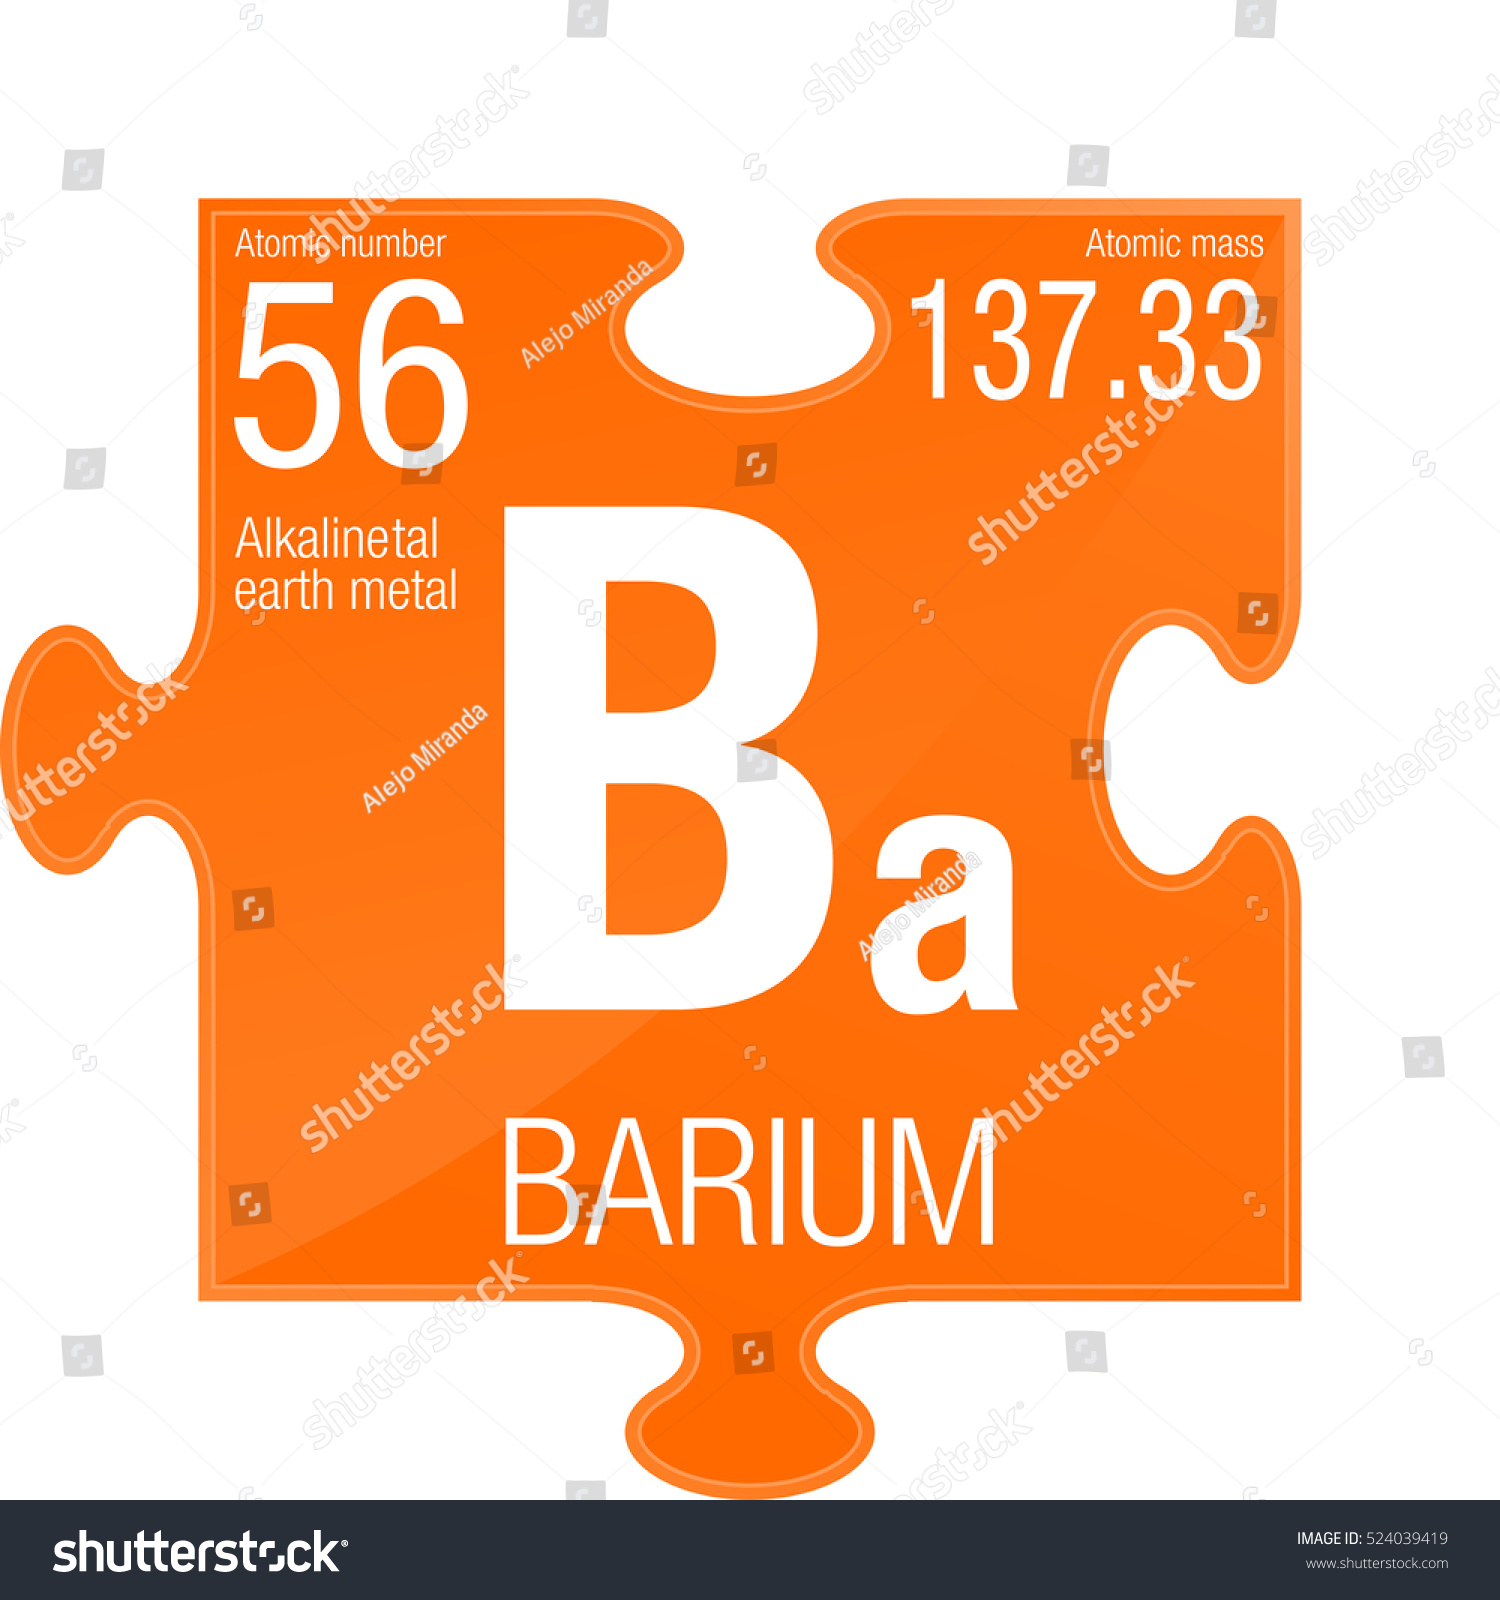 Barium symbol element number 56 periodic stock vector 524039419 barium symbol element number 56 of the periodic table of the elements chemistry biocorpaavc Images